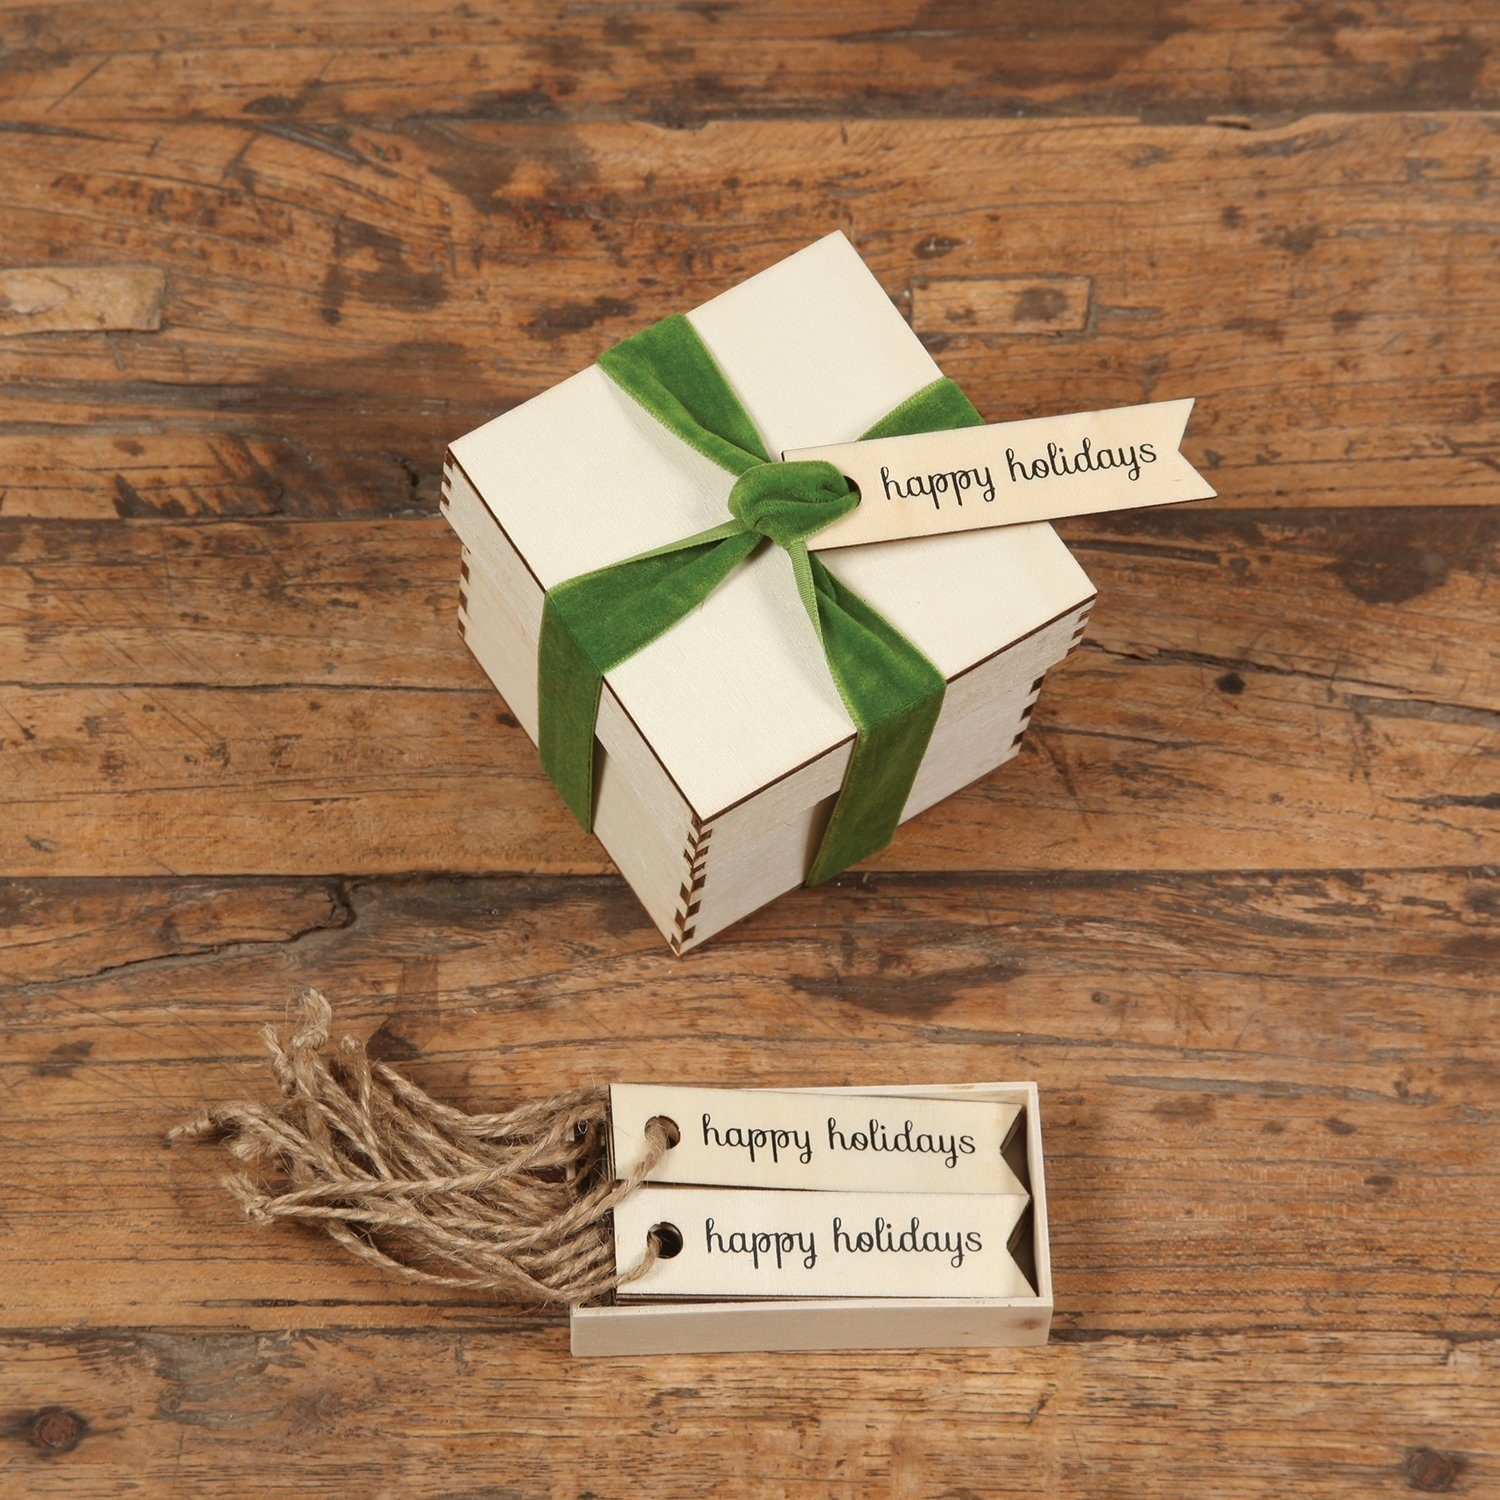 Happy Holidays Wooden Gift Tags-SproutSouth-Stationary